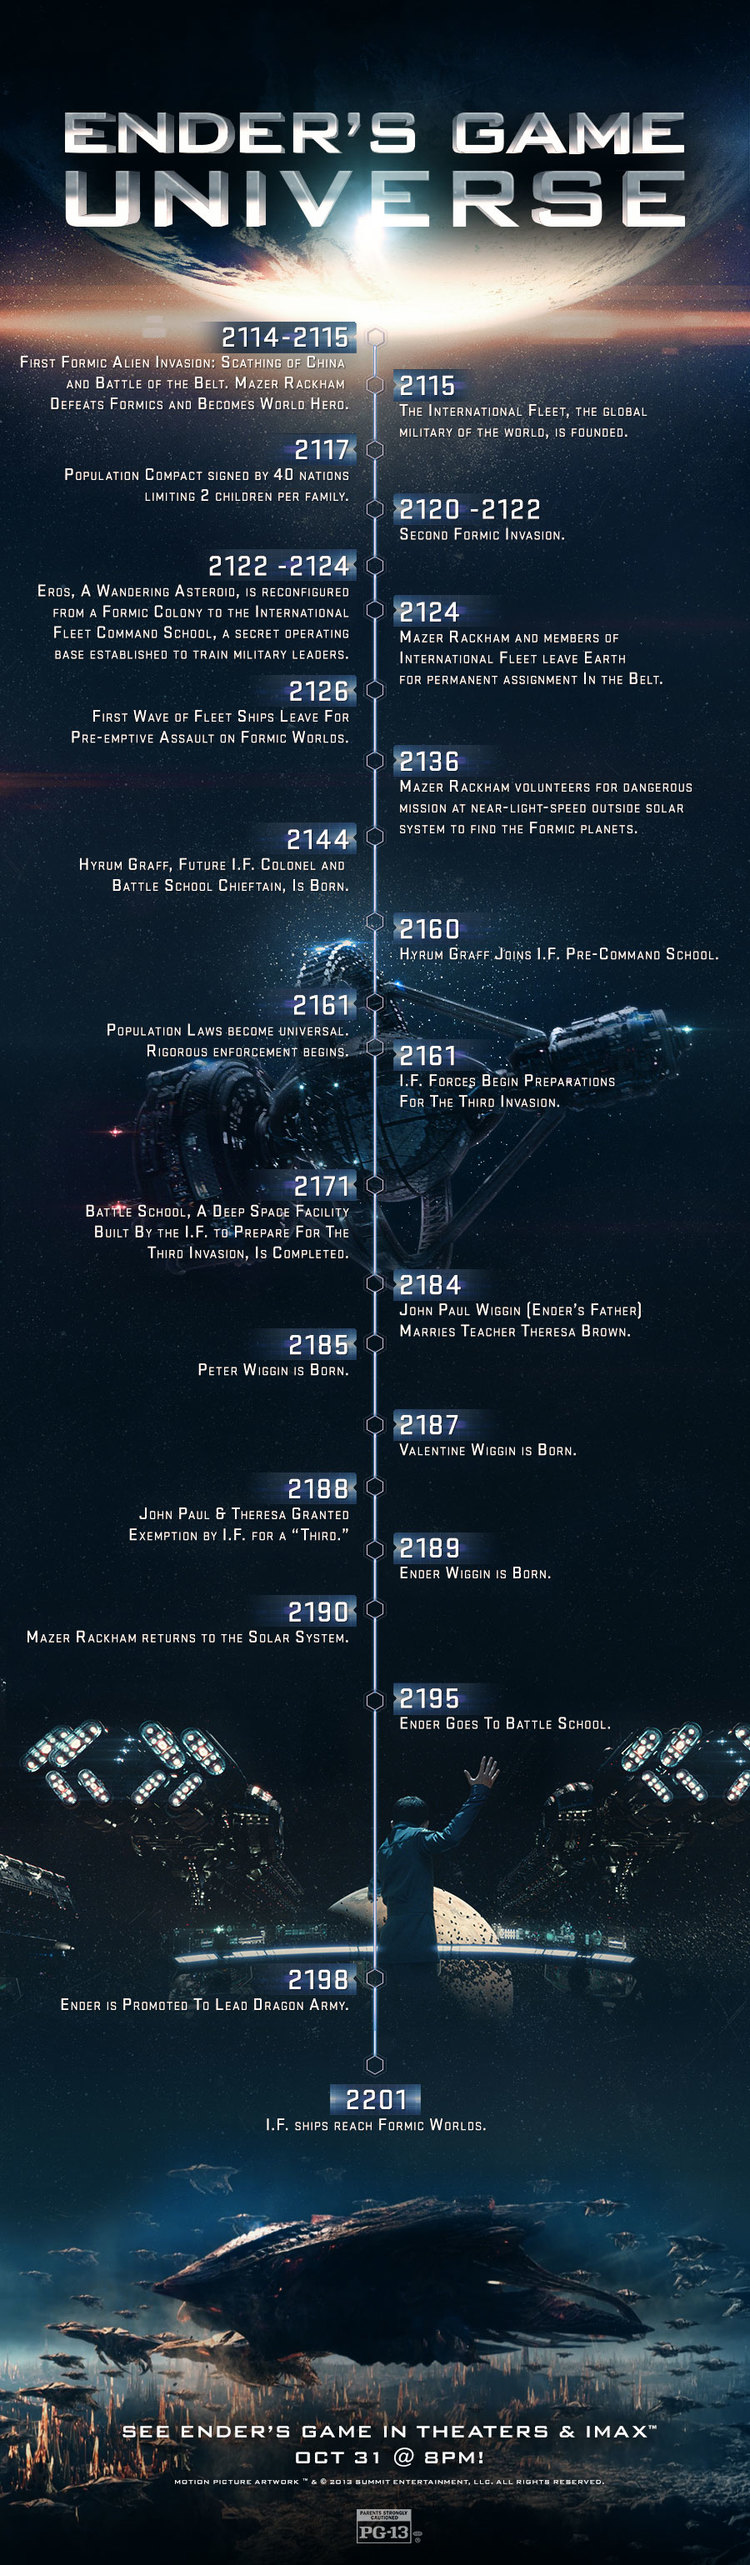 ENDER'S GAME Formic Wars Infographic